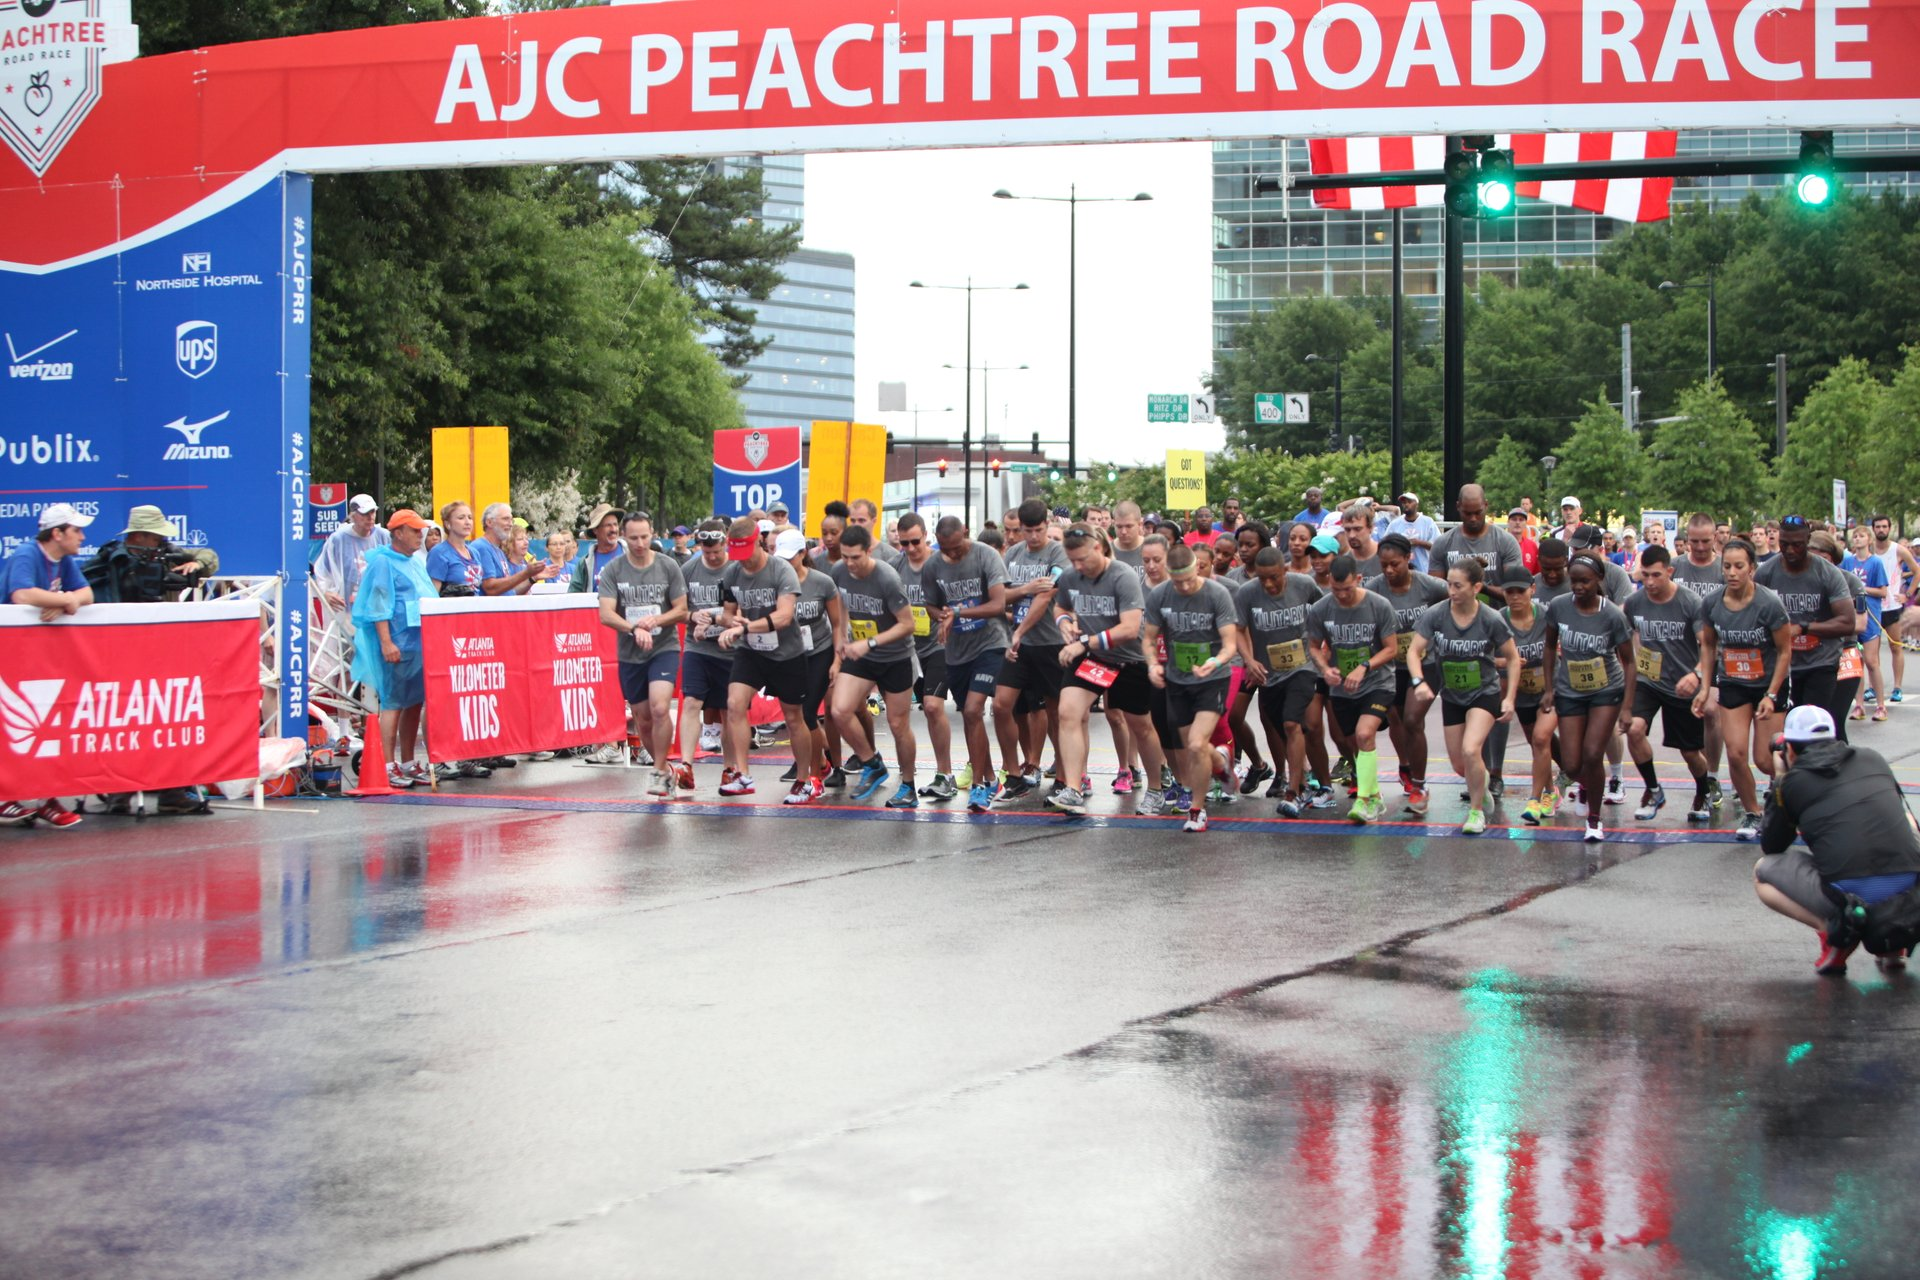 Peachtree Road Race Start 2020